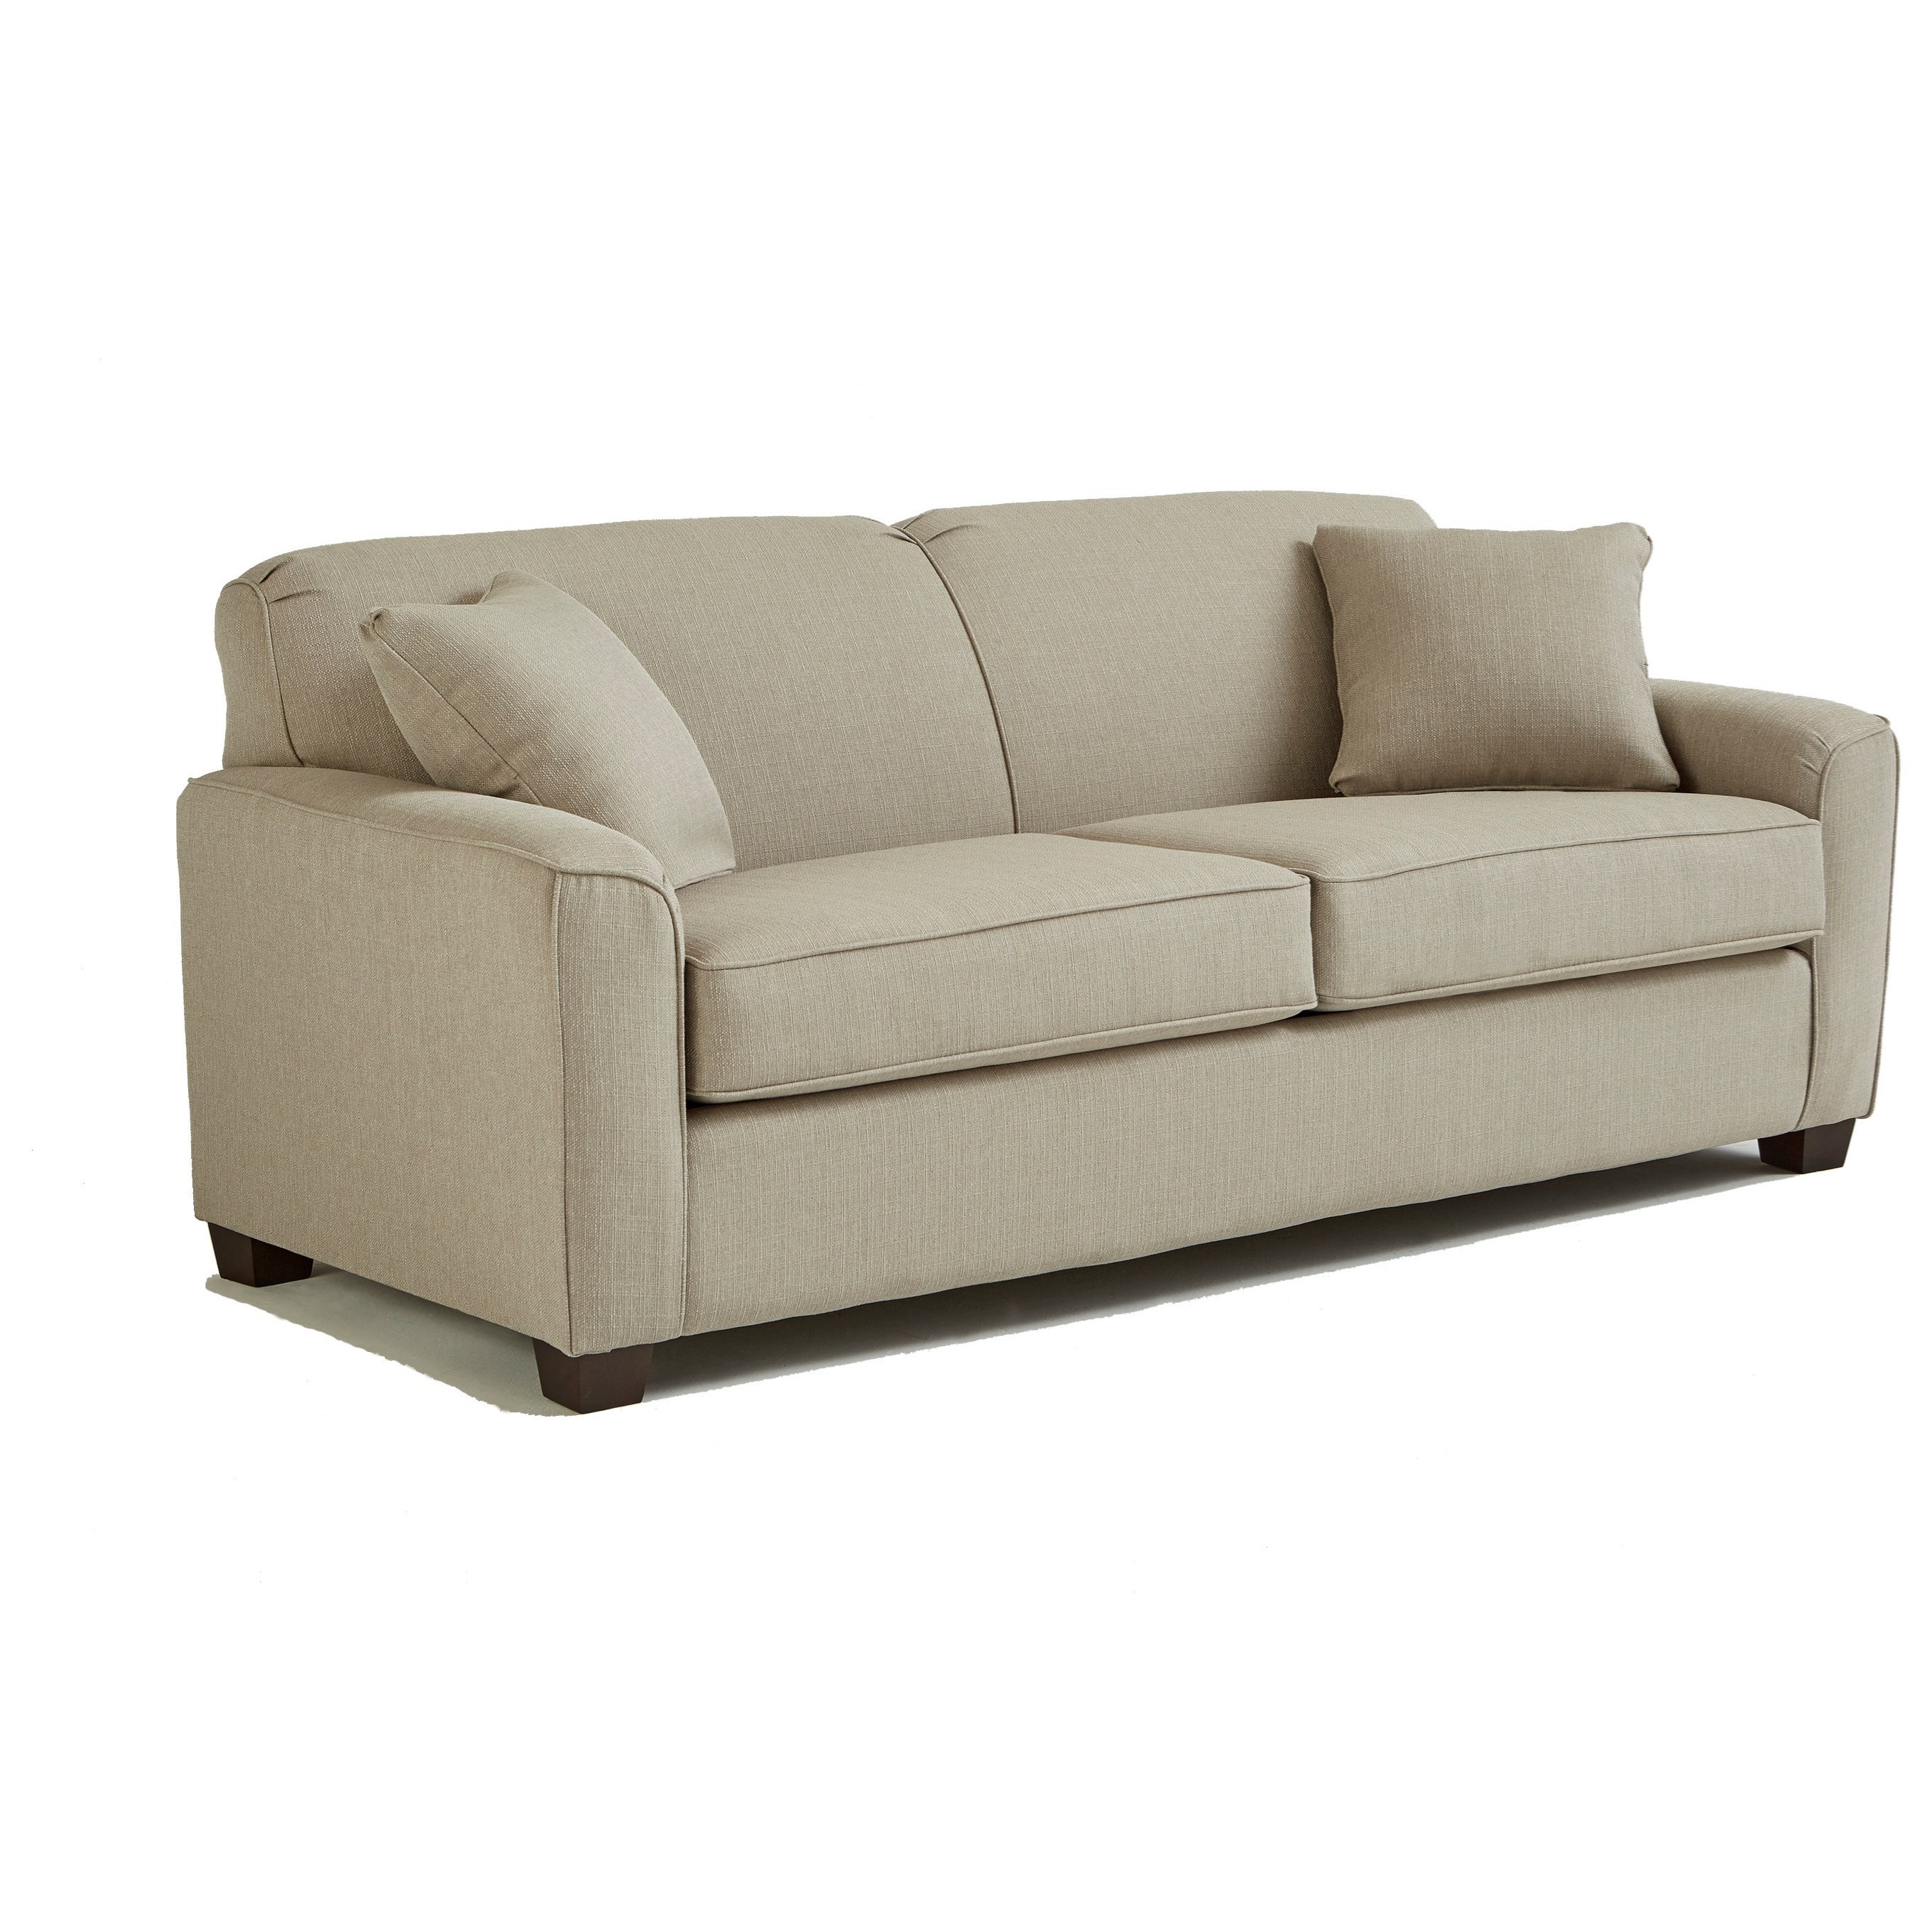 Best Home Furnishings DinahQueen Sofa Sleeper ...